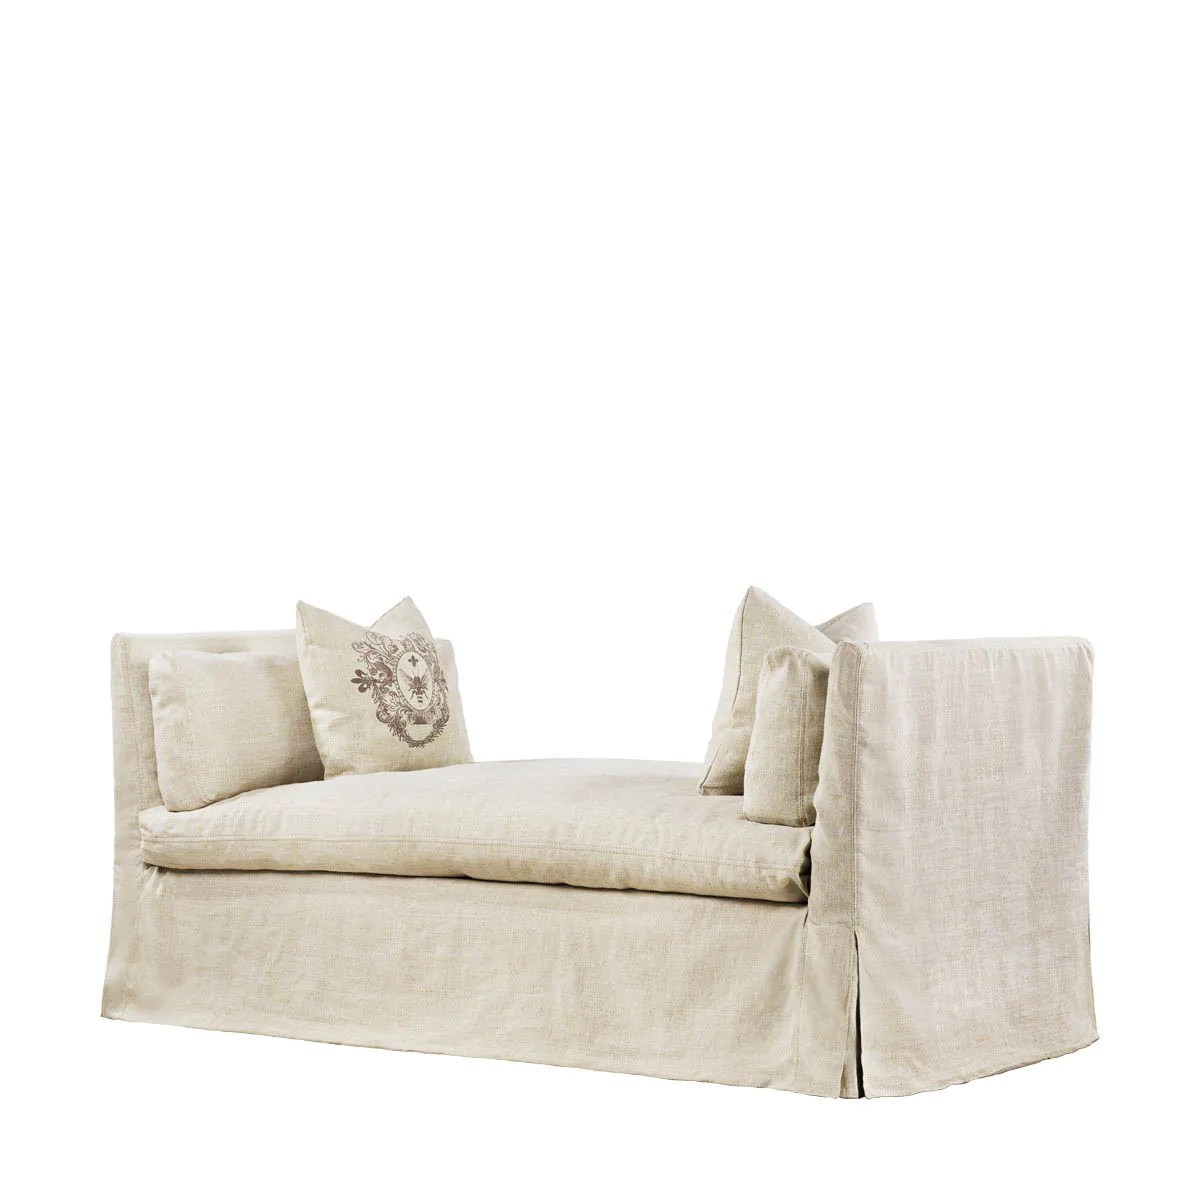 sofa frames ltd mountain ash cisco brothers cover curations limited walterom daybed